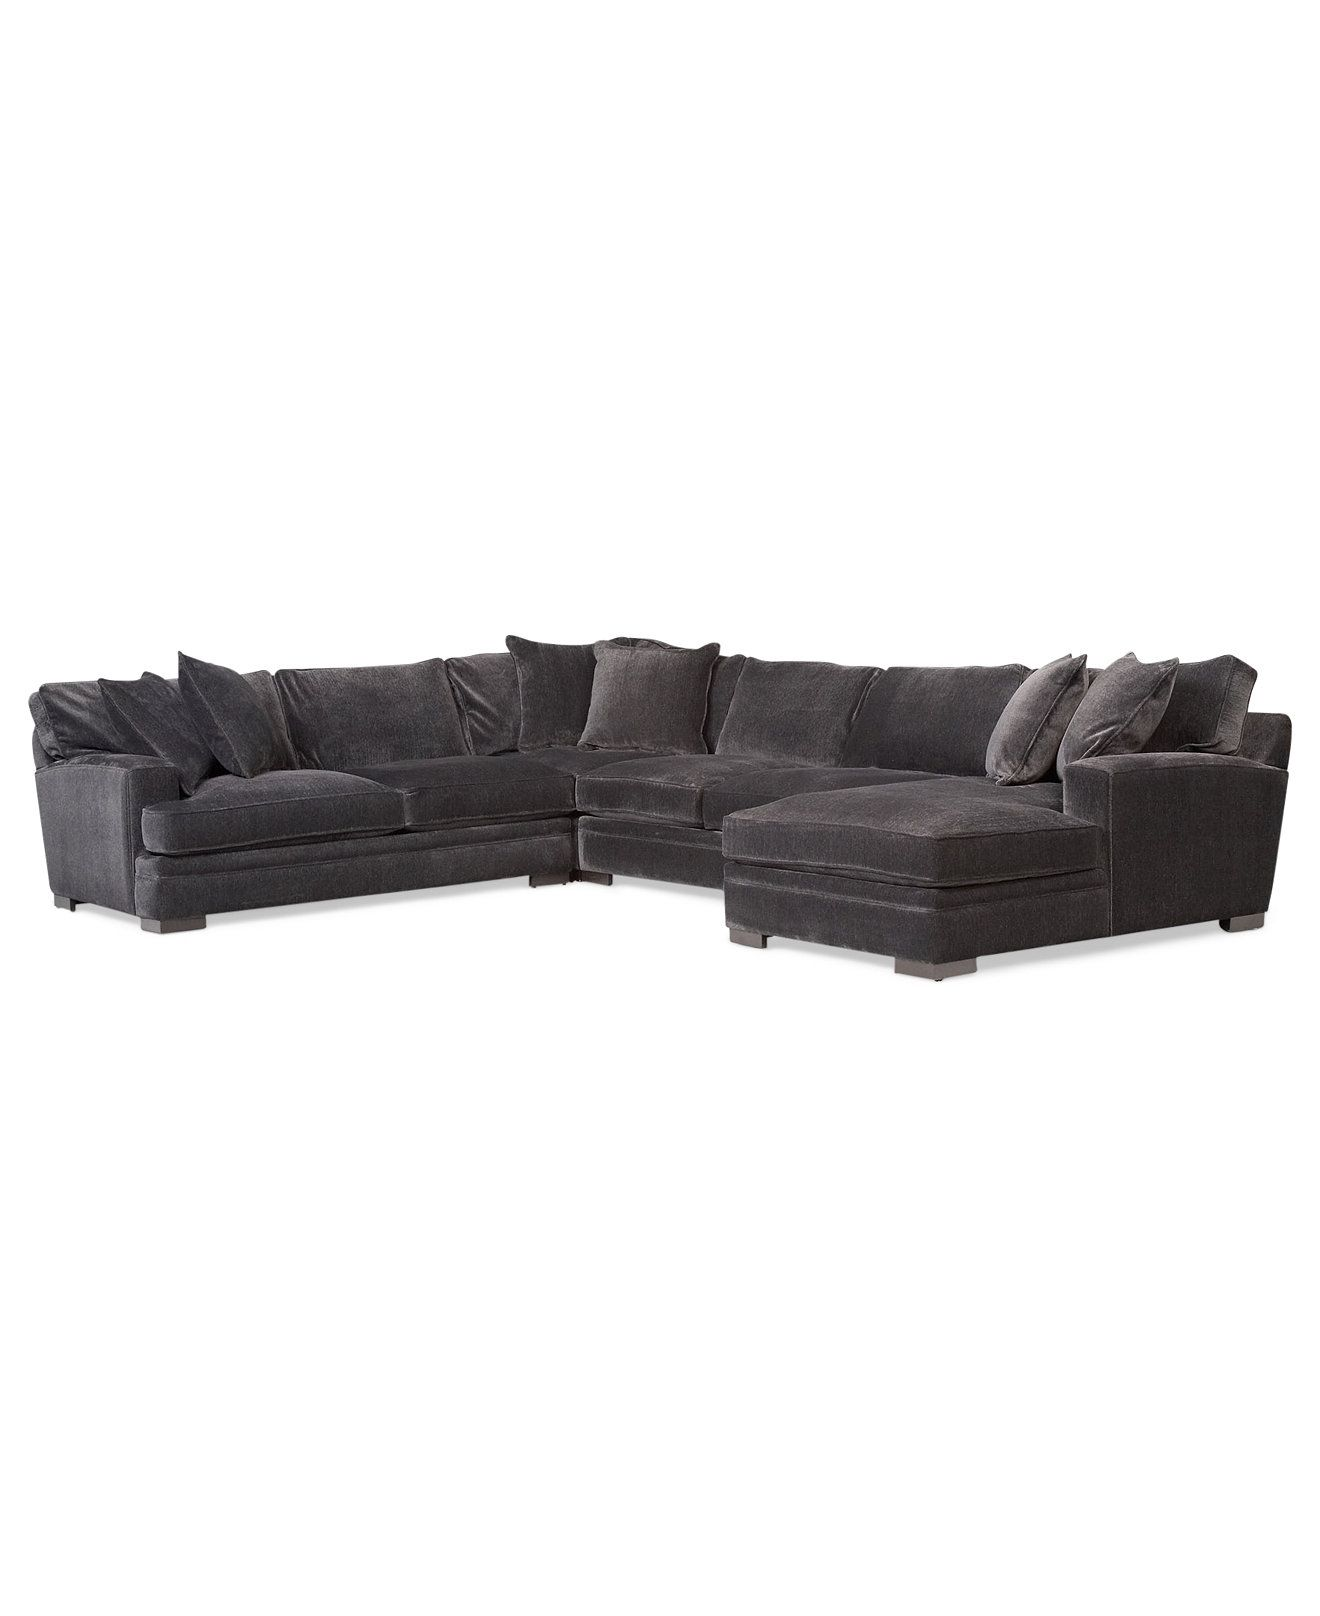 Teddy Fabric 4 Piece Chaise Sectional Sofa